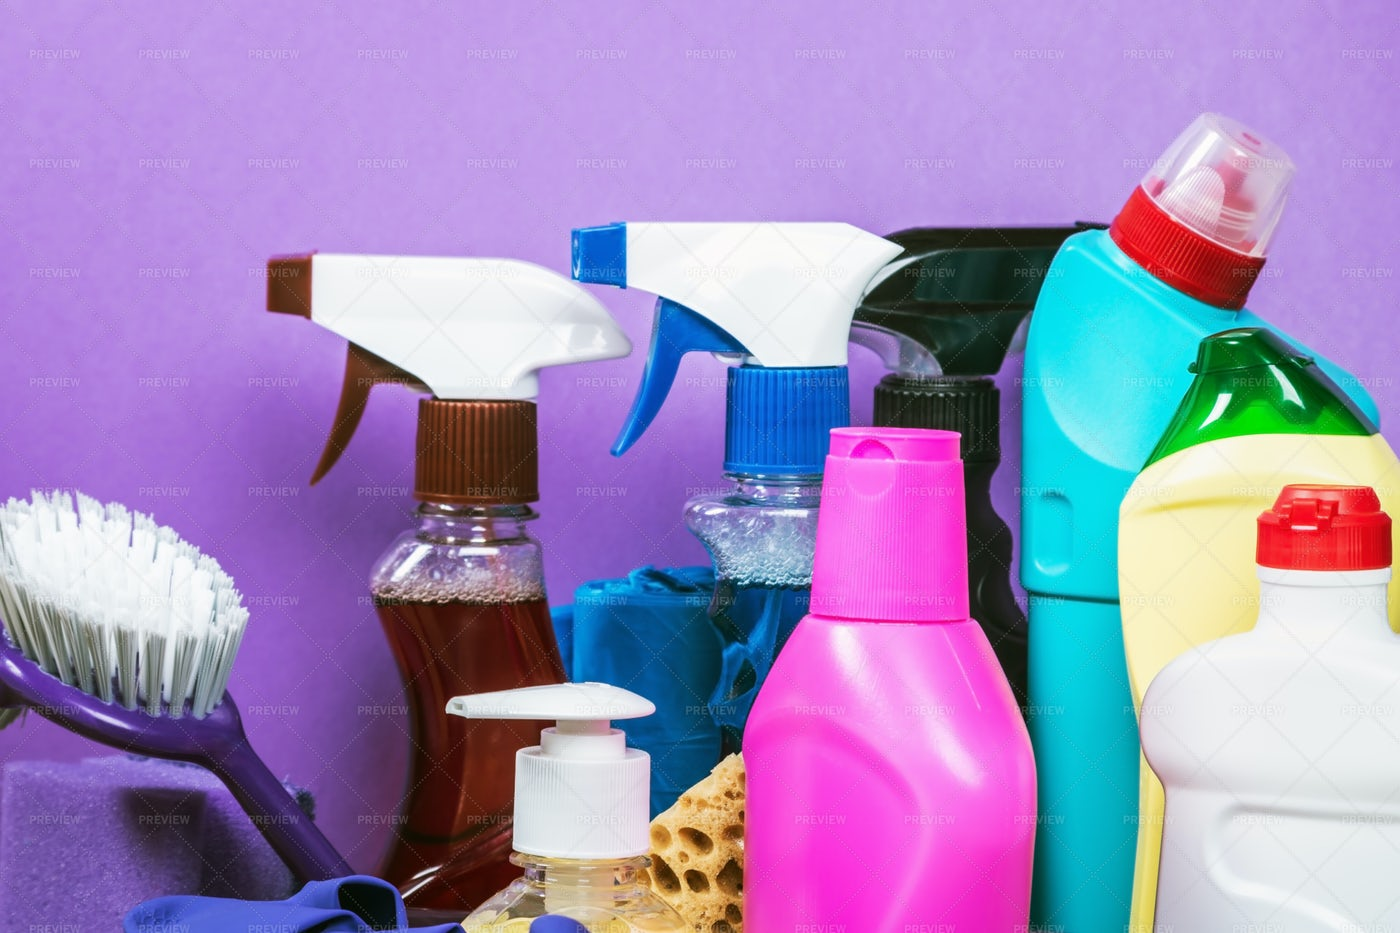 Products For Cleaning: Stock Photos